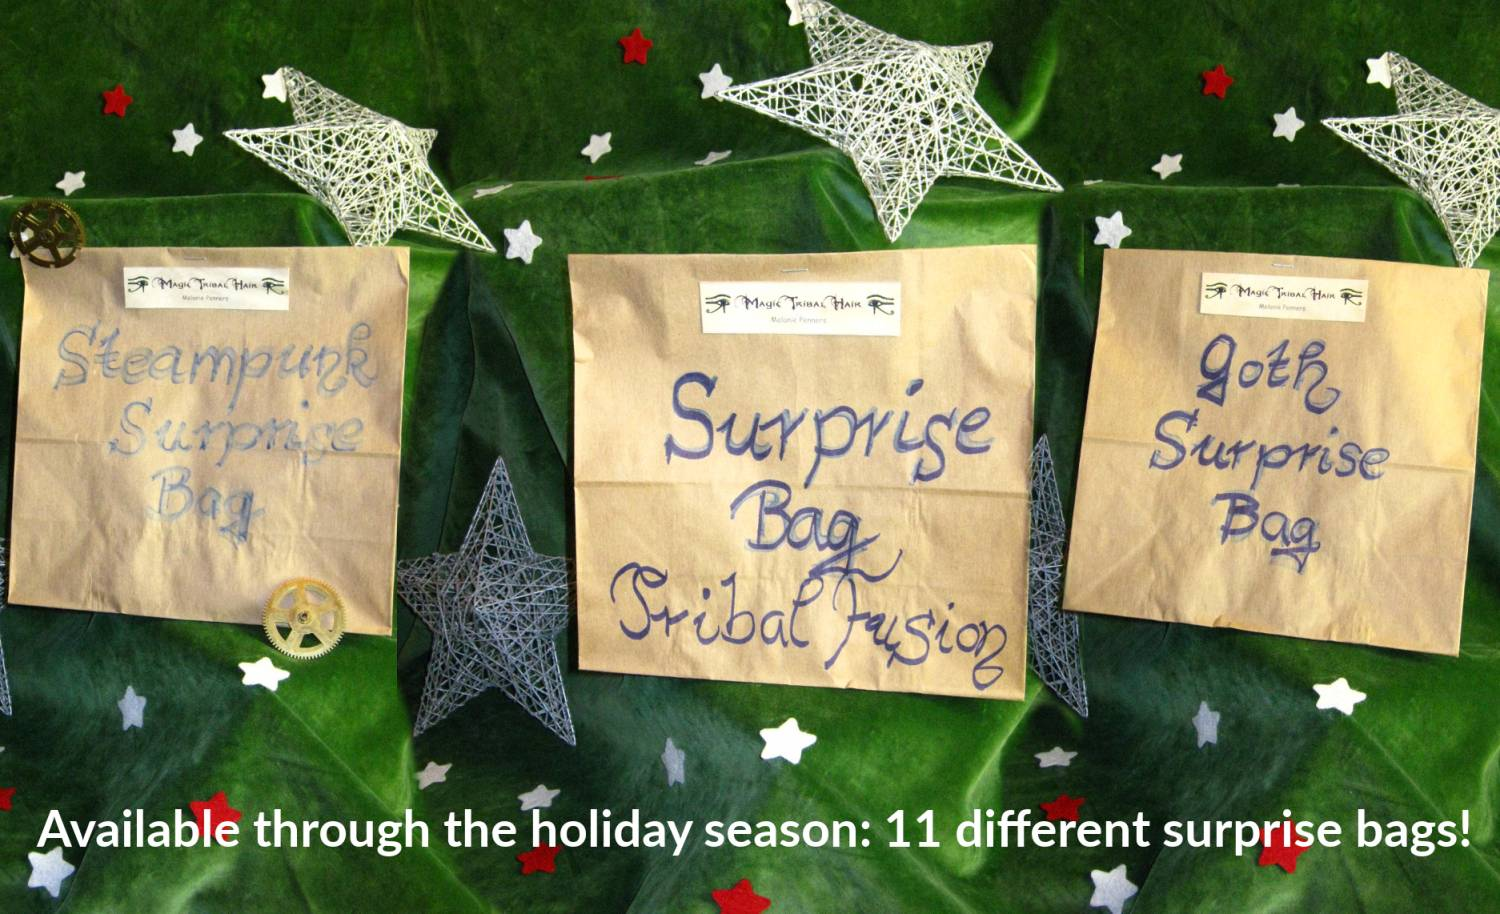 All surprise bags available for the holidays!